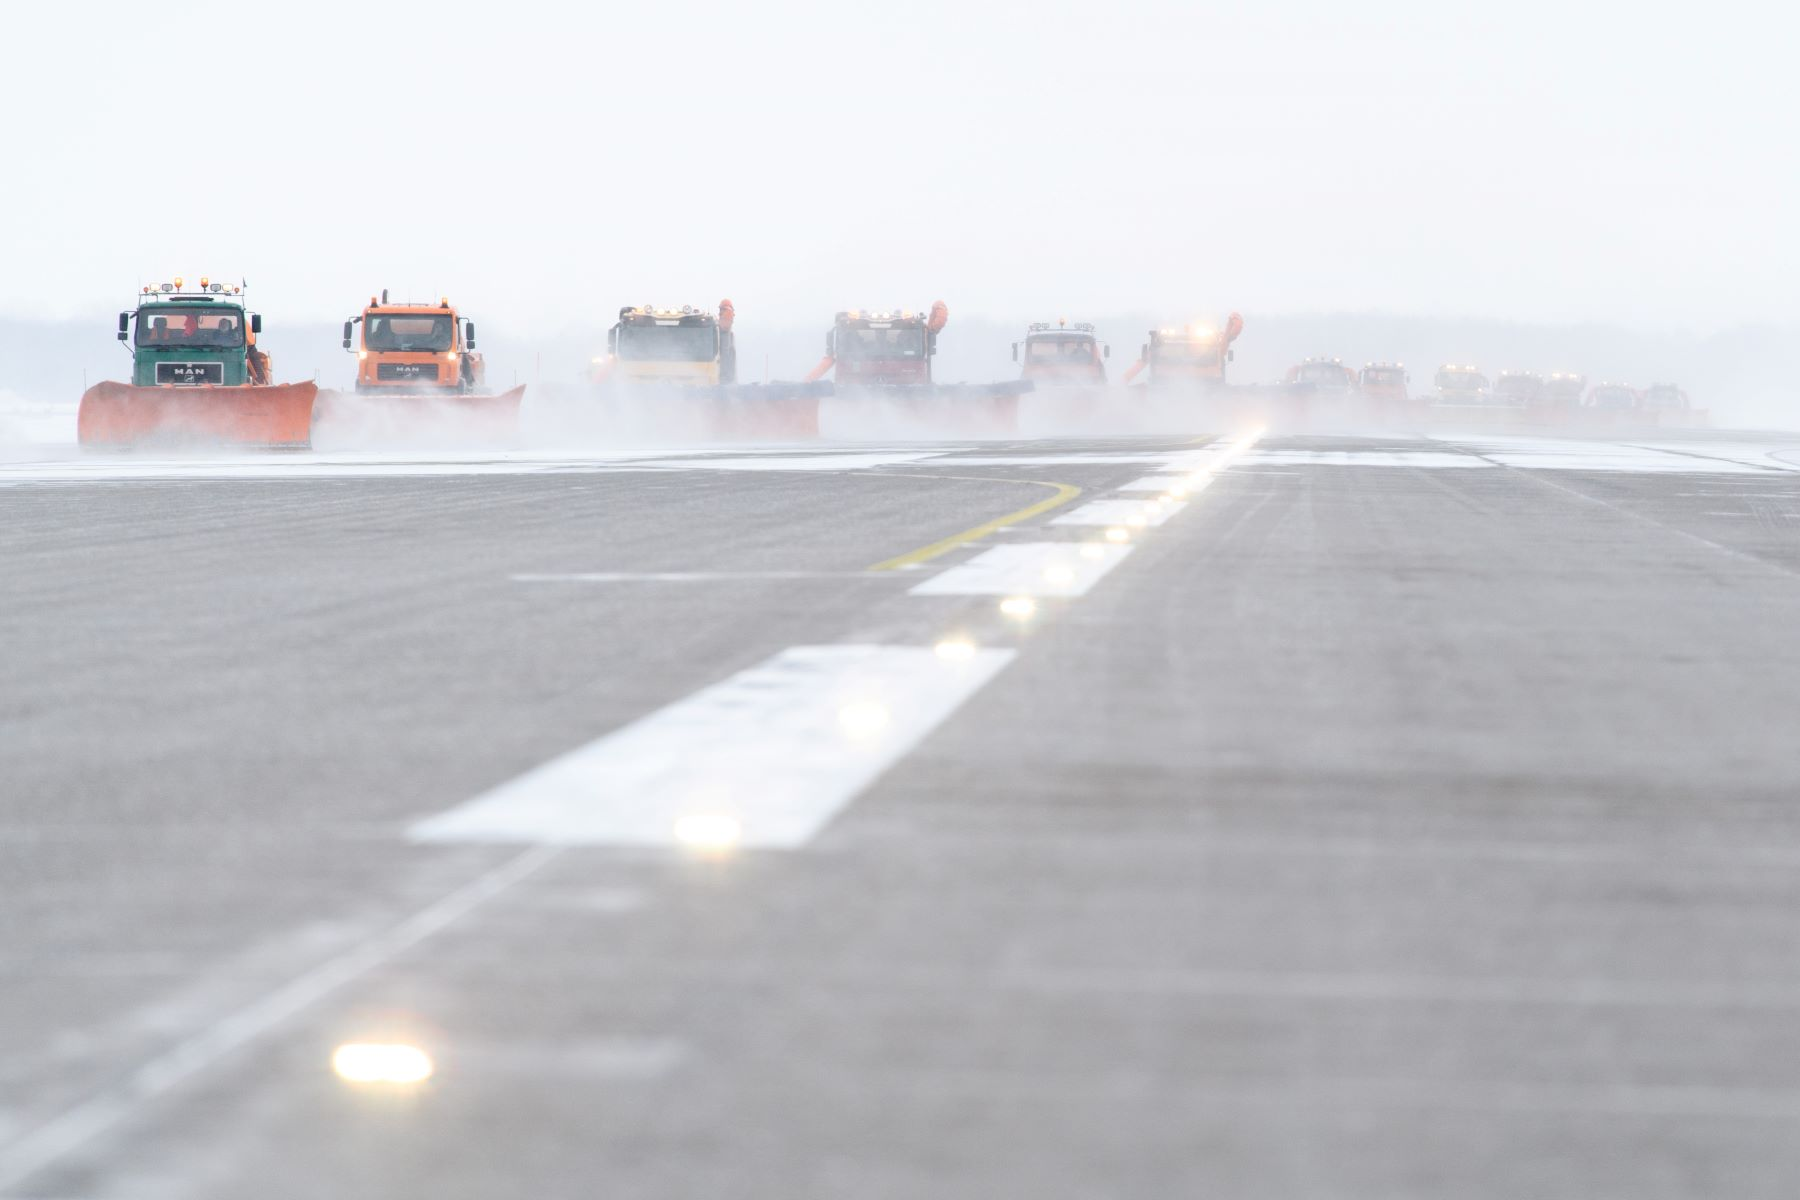 The Munich Airport covered in black ice as snow ploughs clear the runway